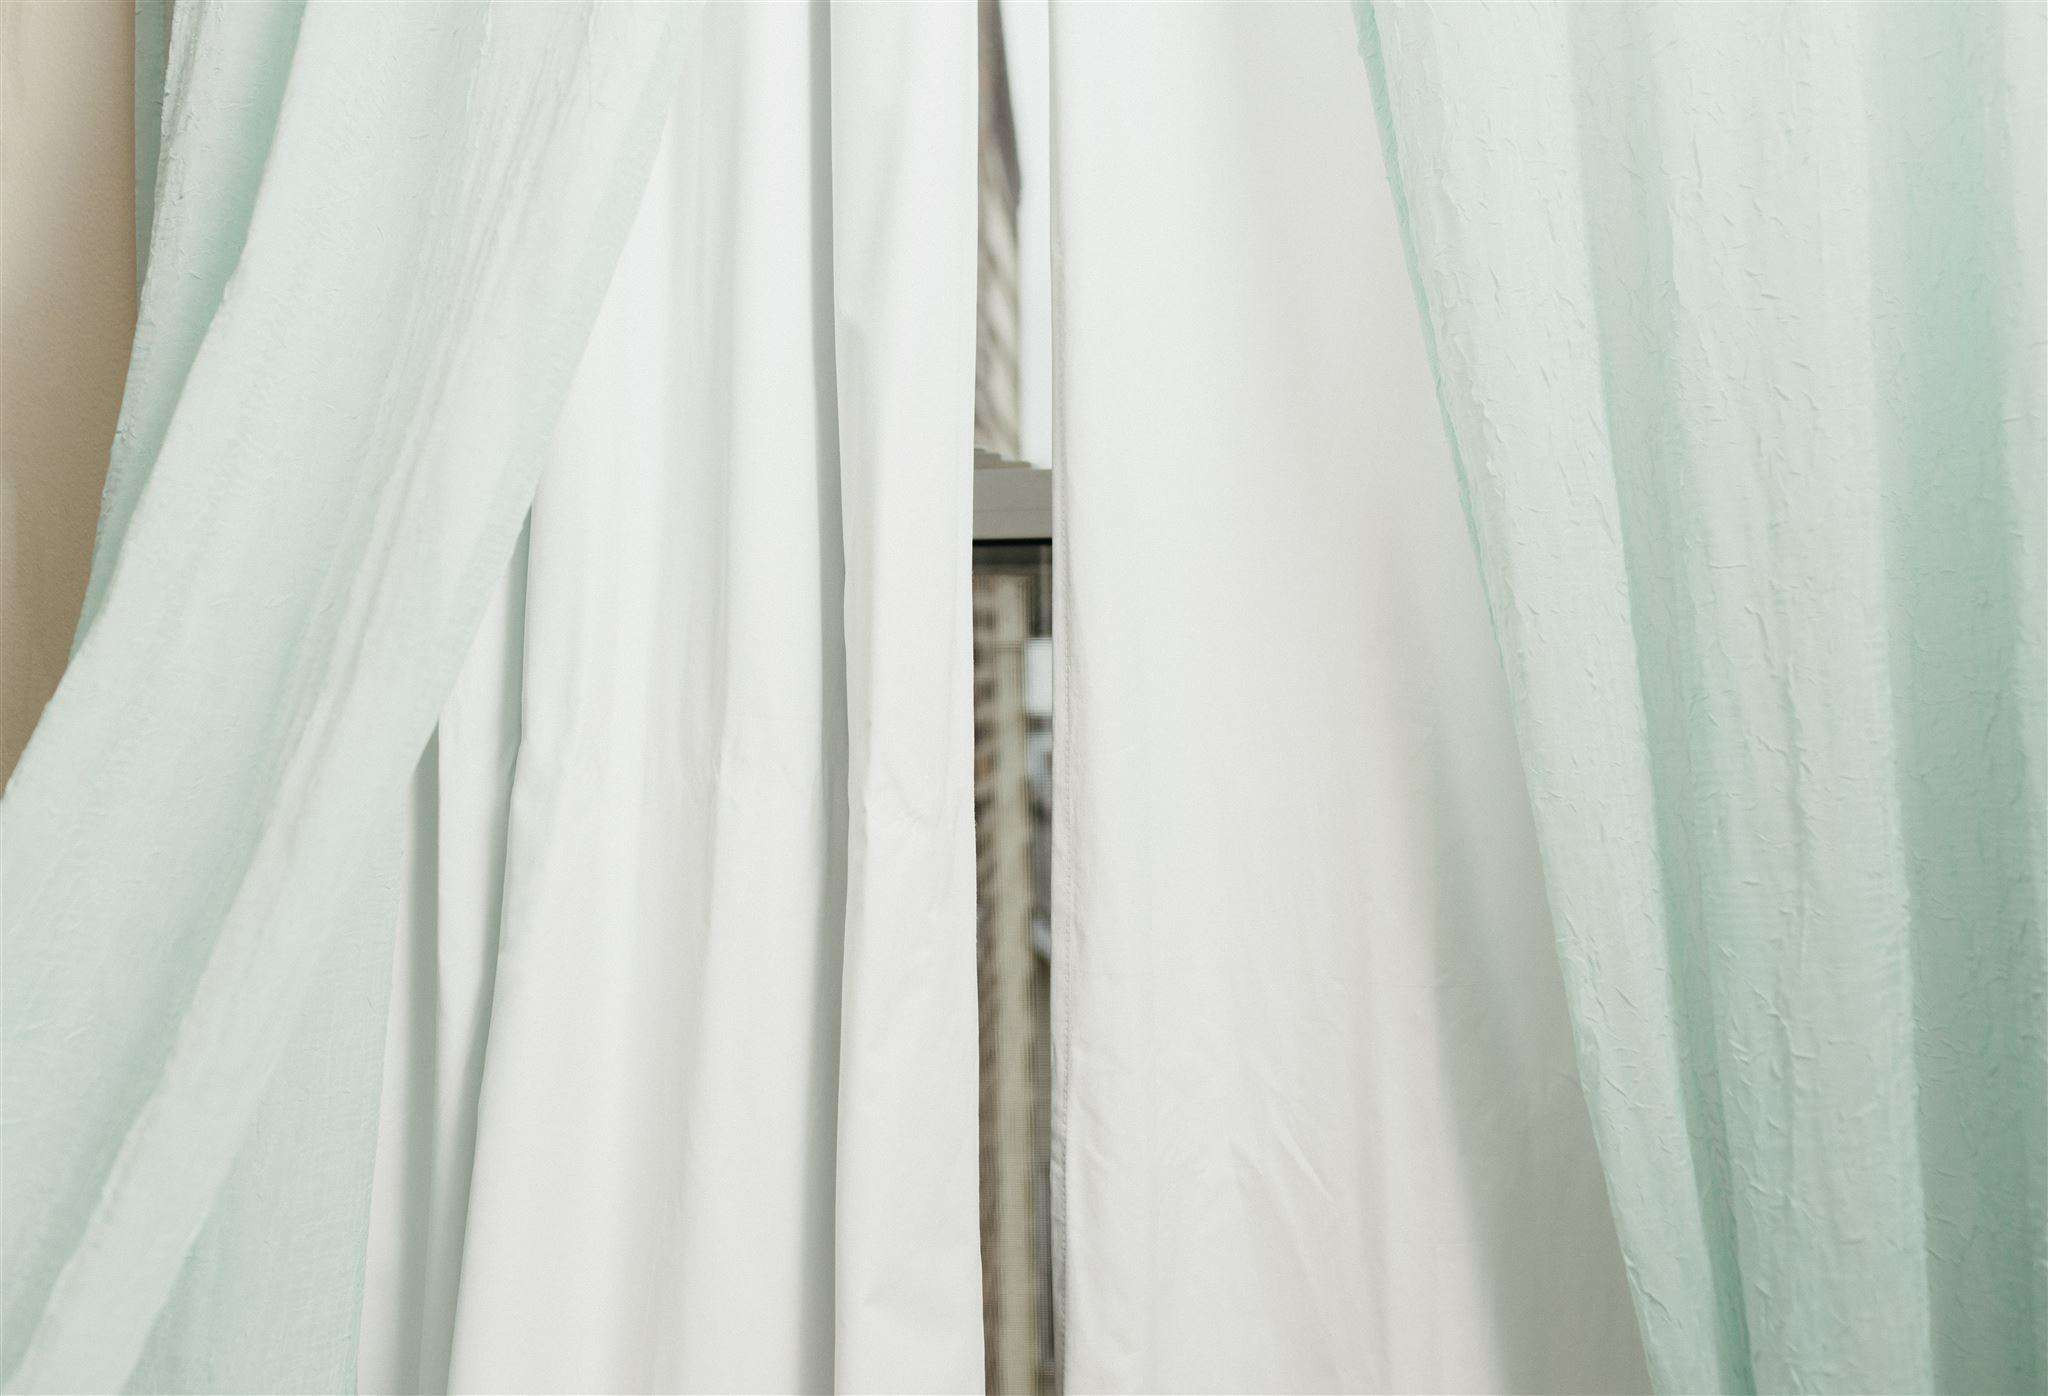 using curtains for sound-proofing